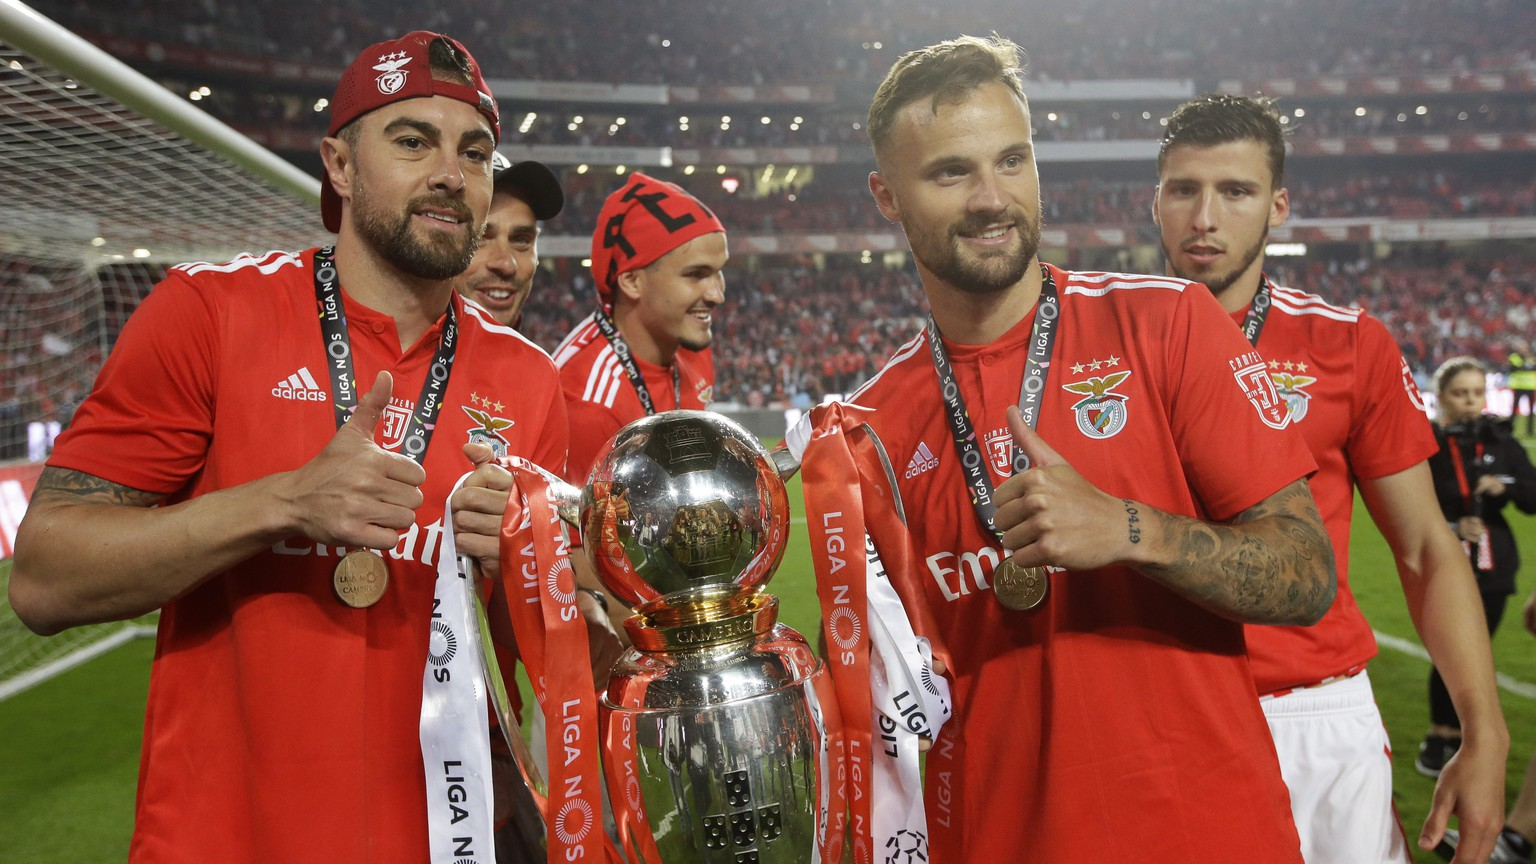 Benfica's team captain Jardel, left, and Haris Seferovic pose with the trophy after the Portuguese league last round soccer match between Benfica and Santa Clara at the Luz stadium in Lisbon, Saturday, May 18, 2019. Benfica won 4-1 to clinch the championship title. (AP Photo/Armando Franca)